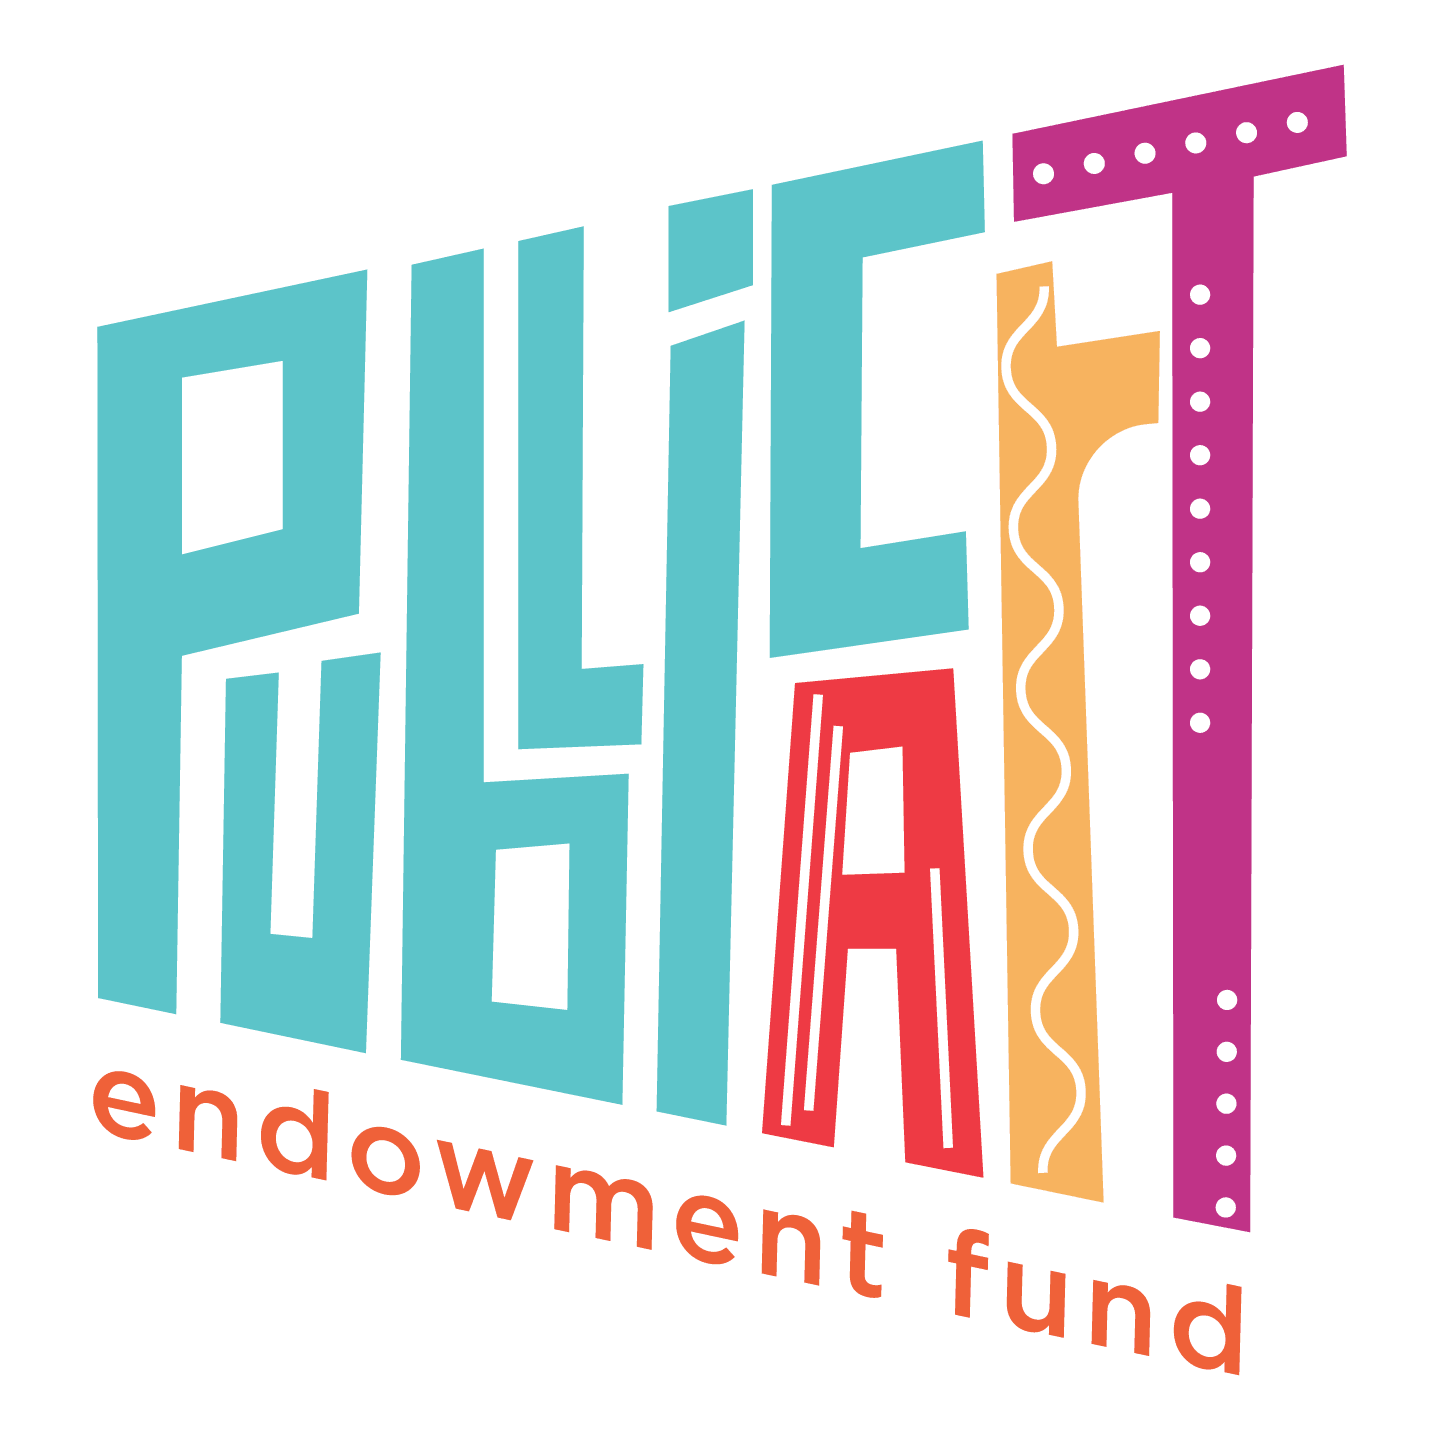 PublicArtFundLogo-Color-1440x1440